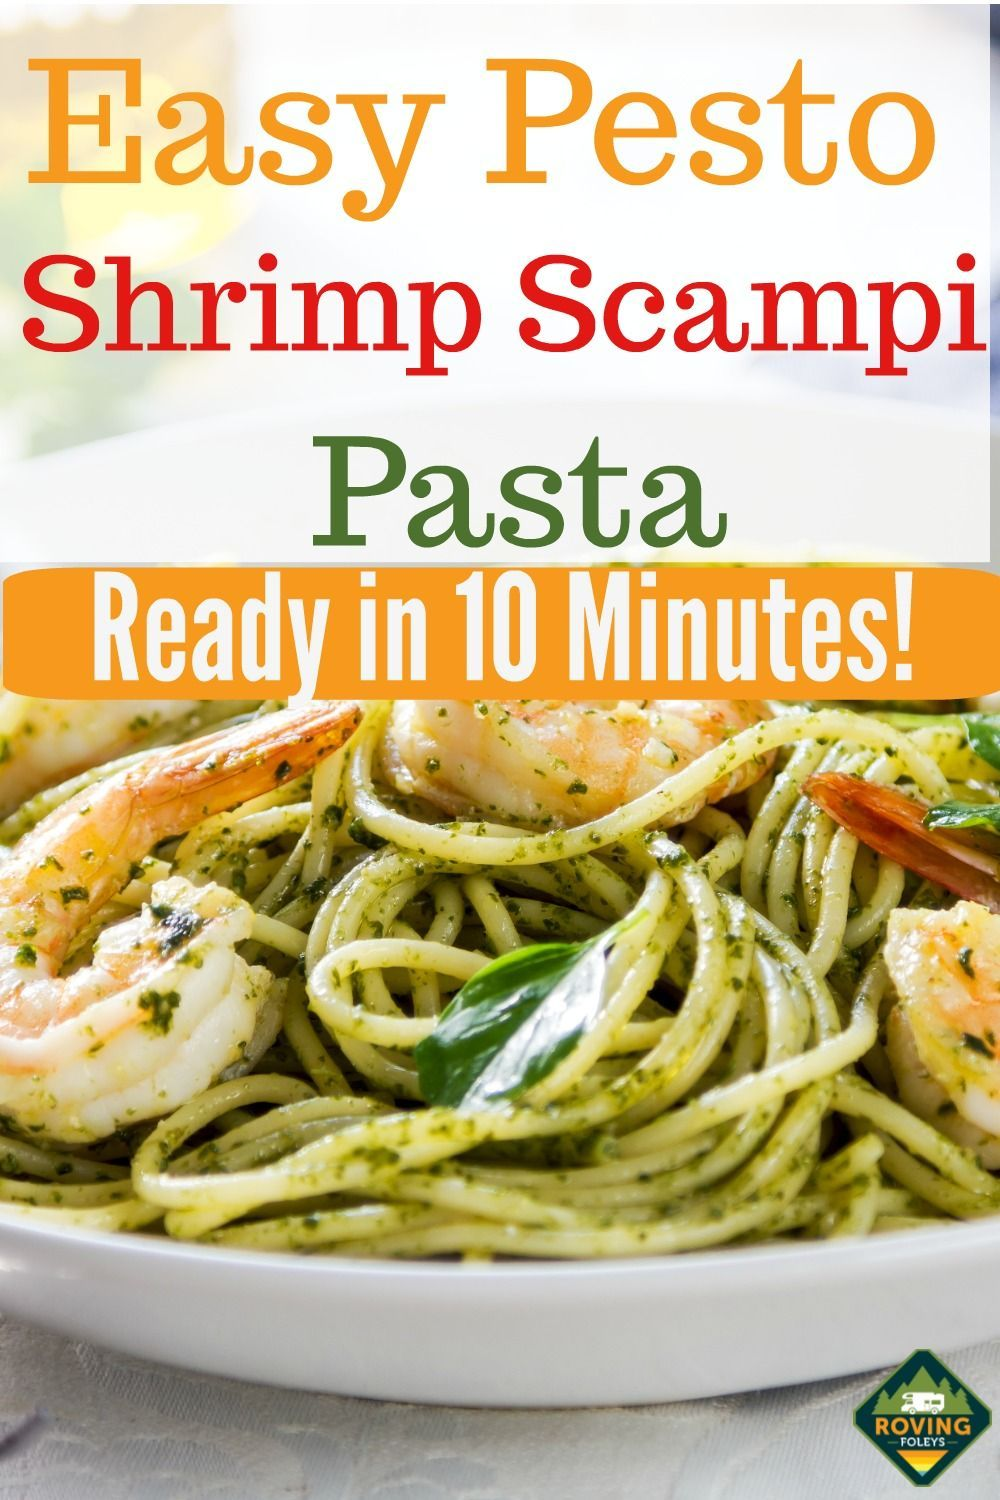 Easy 10 minute Shrimp Scampi Recipe #shrimpscampi